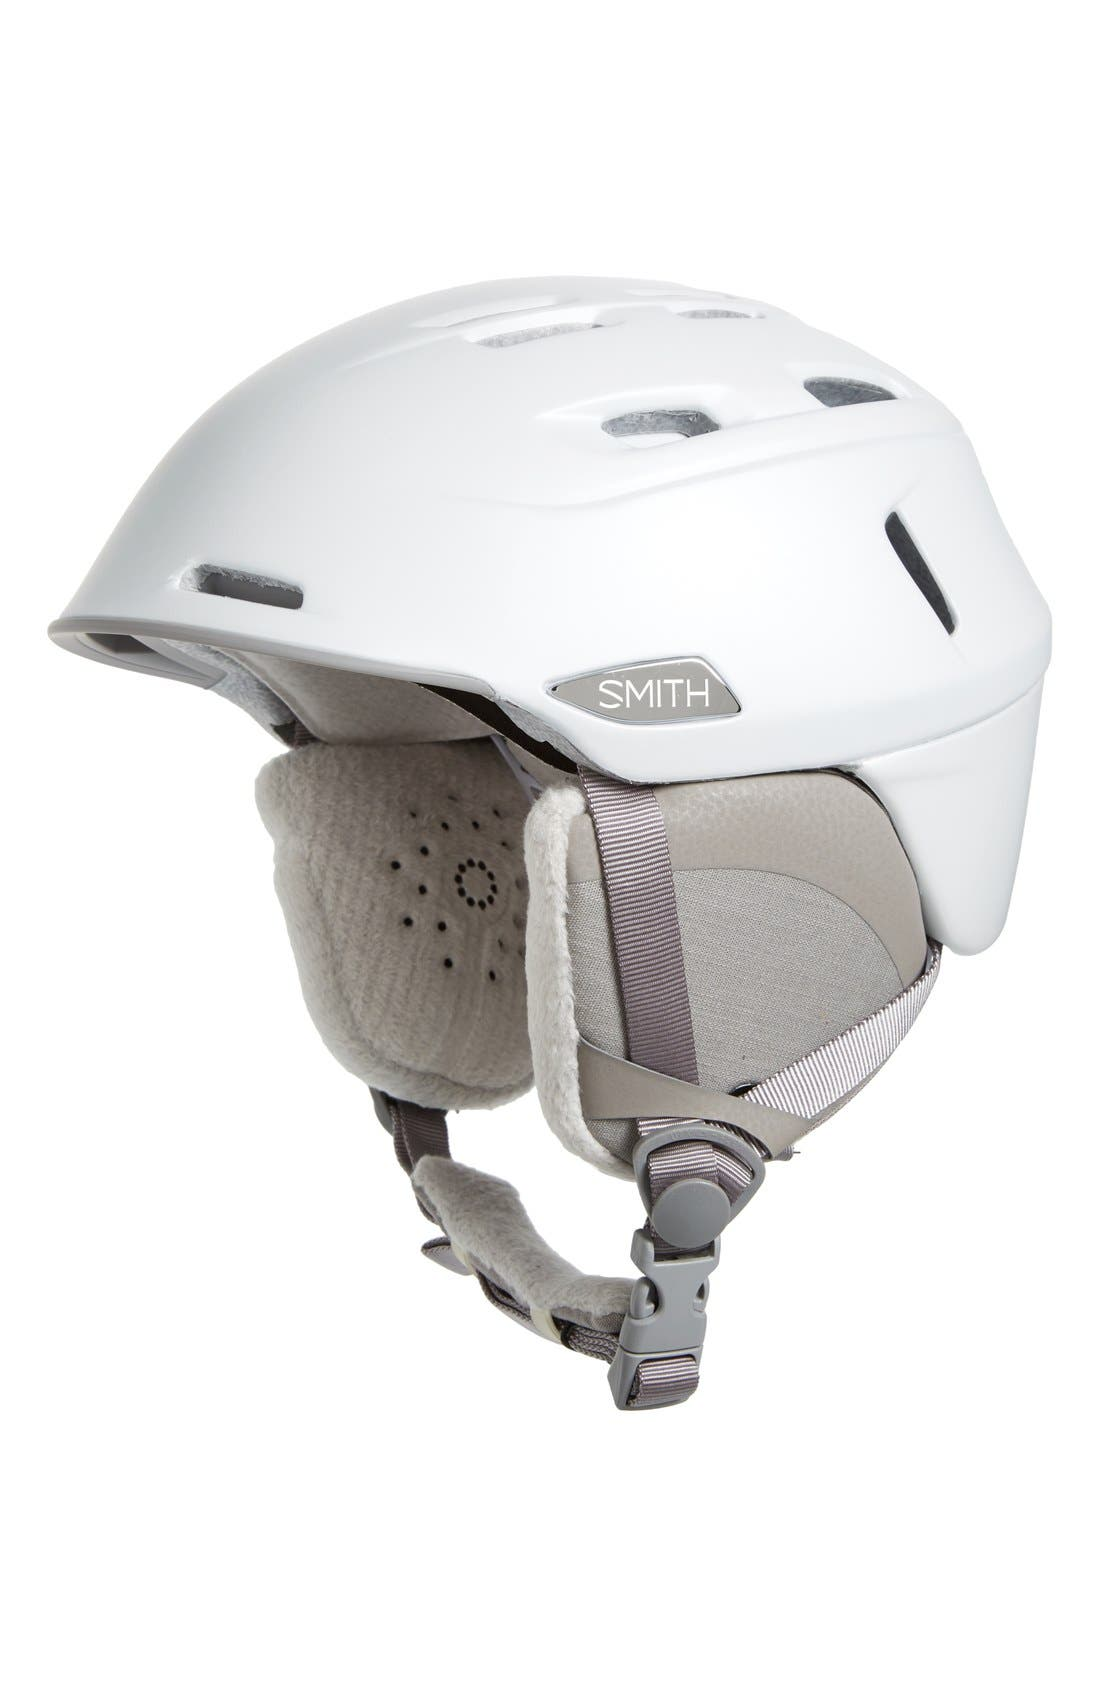 Smith 'Compass' Snow Helmet